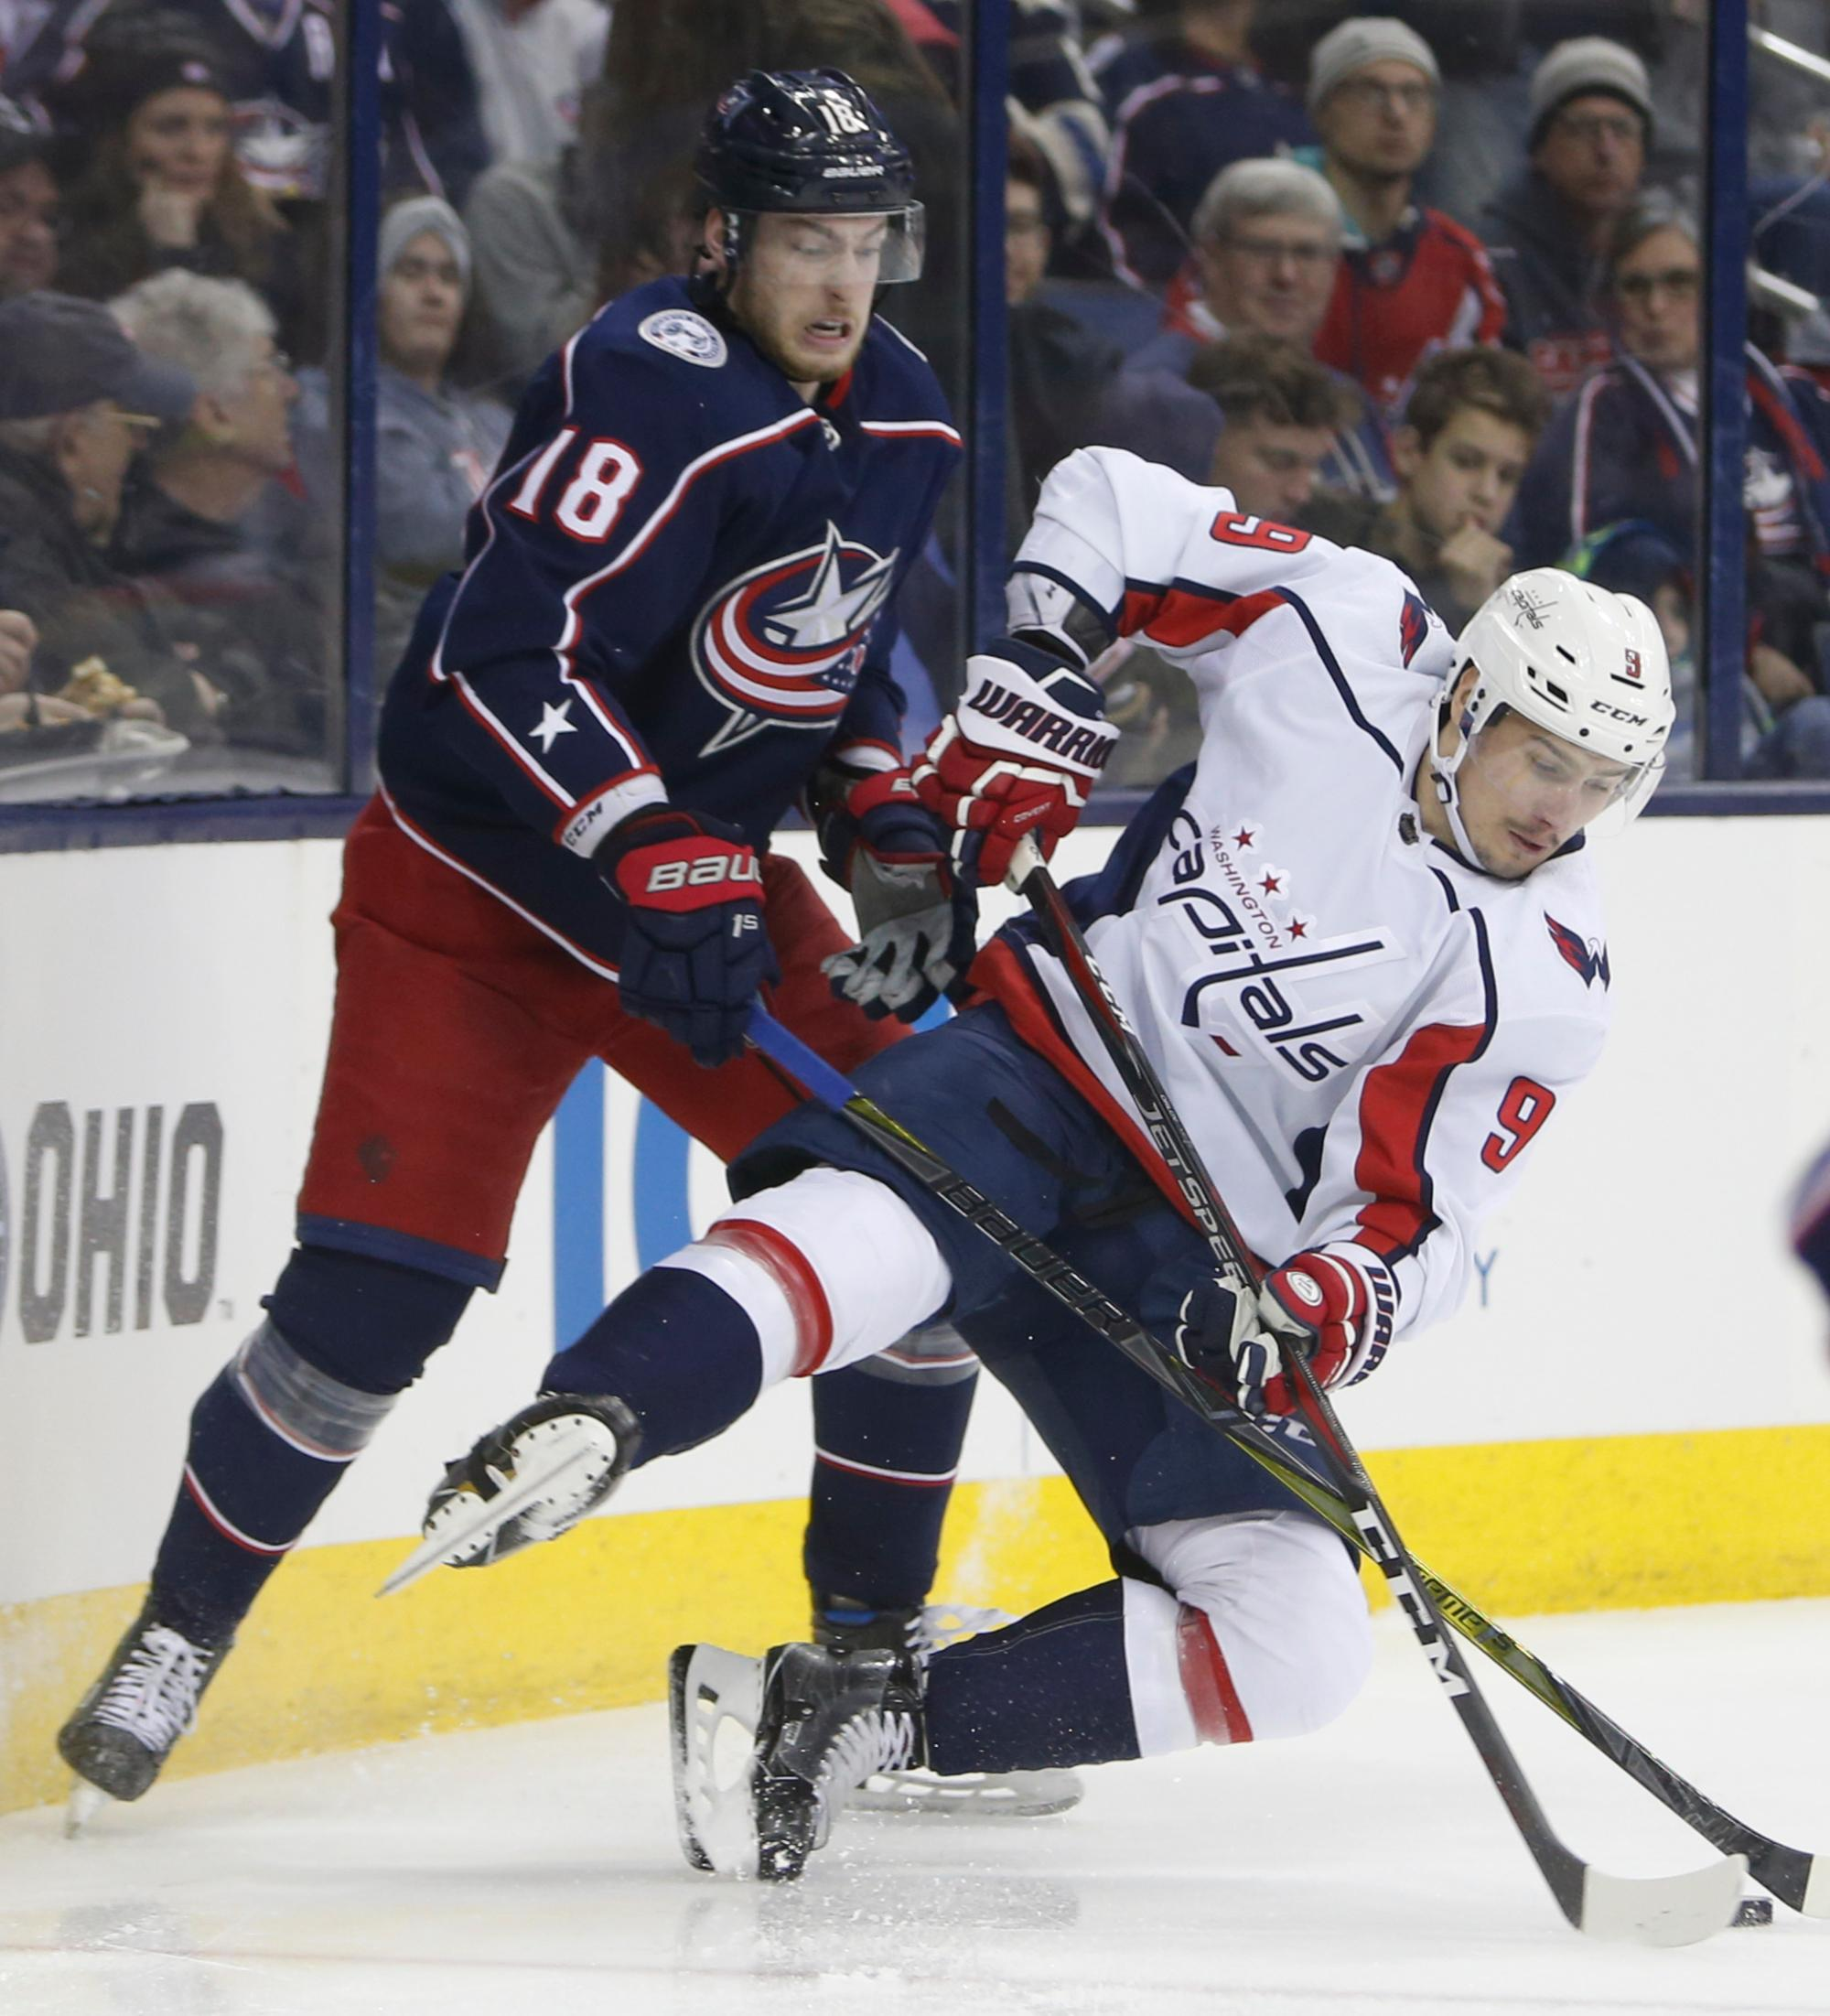 Columbus Blue Jackets' Pierre-Luc Dubois, left, and Washington Capitals' Dmitry Orlov, of Russia, fight for a loose puck during the second period of an NHL hockey game Tuesday, Feb. 6, 2018, in Columbus, Ohio. (AP Photo/Jay LaPrete)